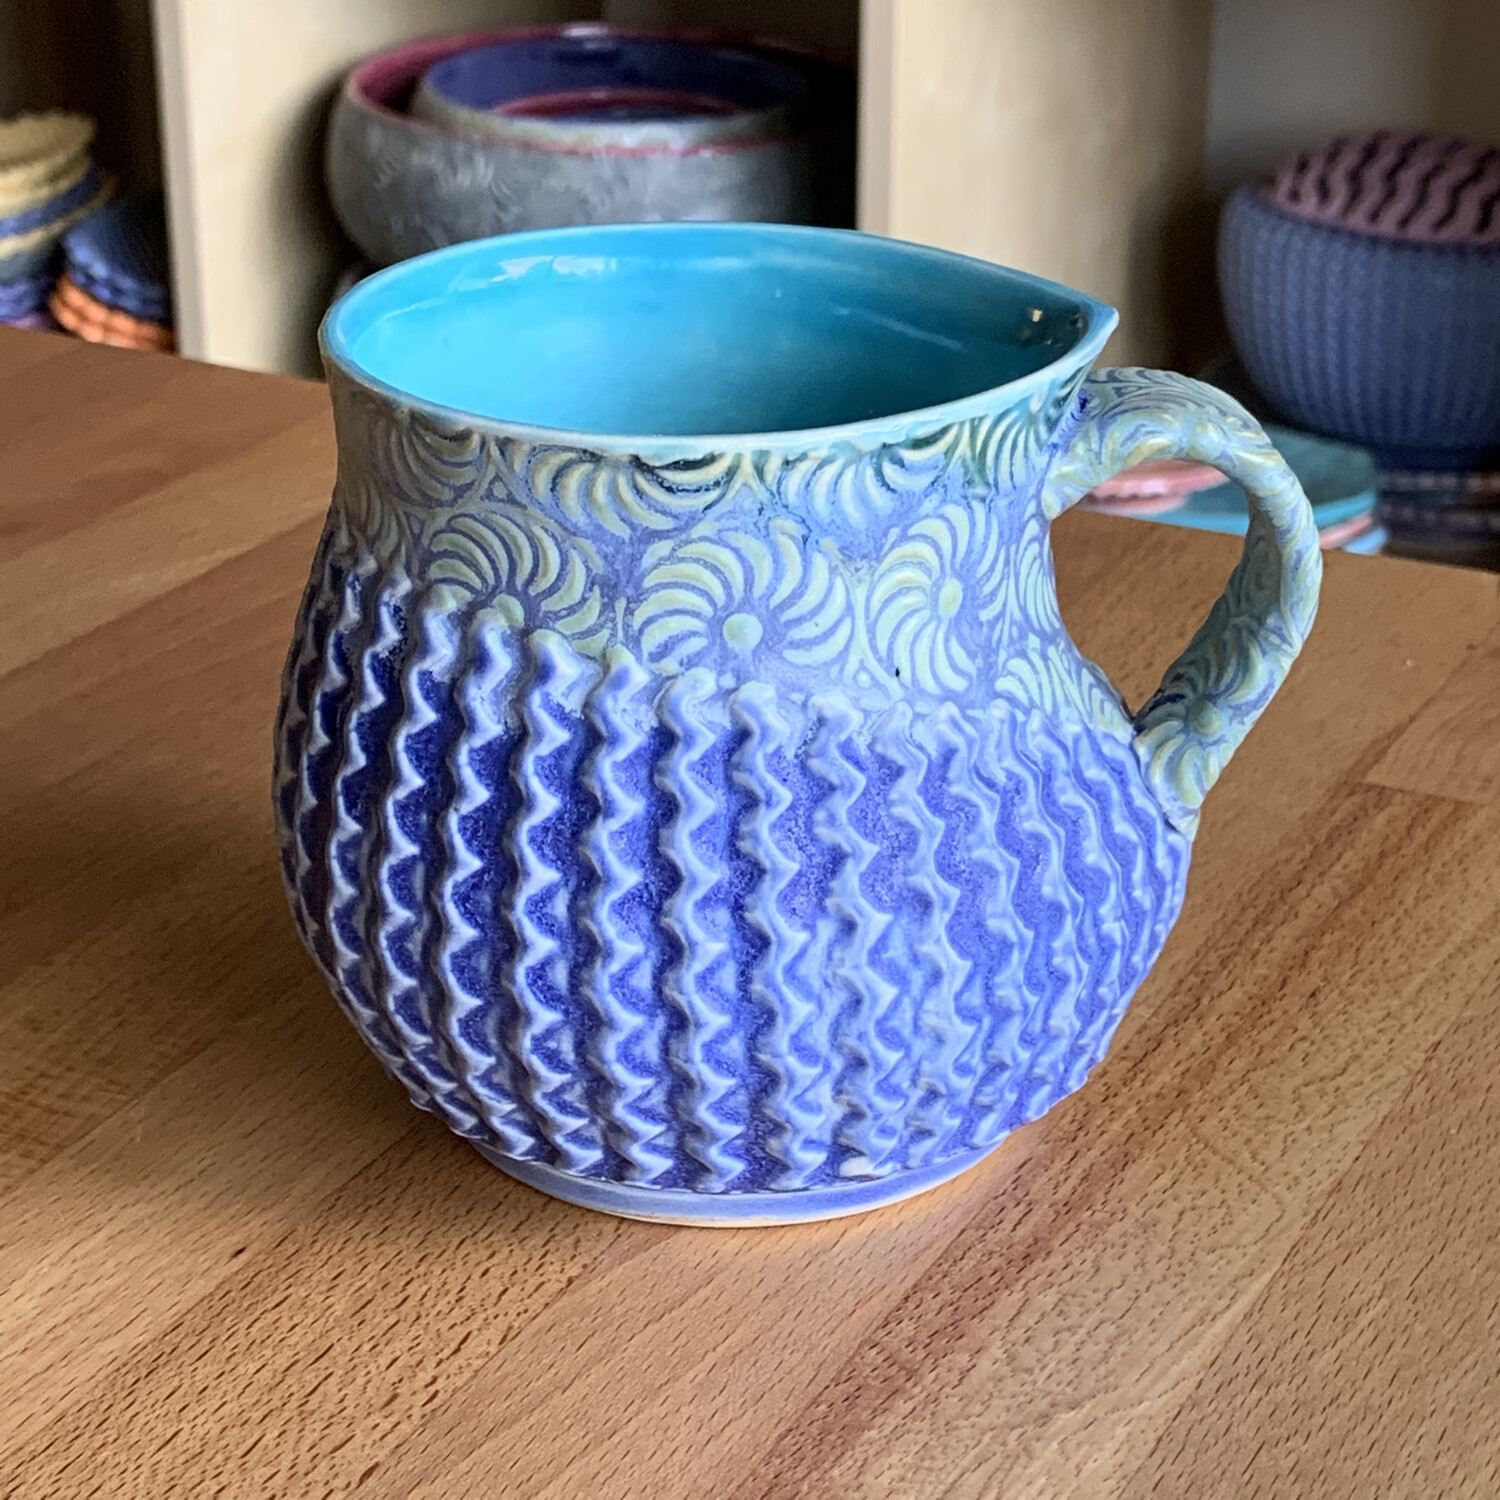 She Cup in turquoise, watered mermaid & bloo